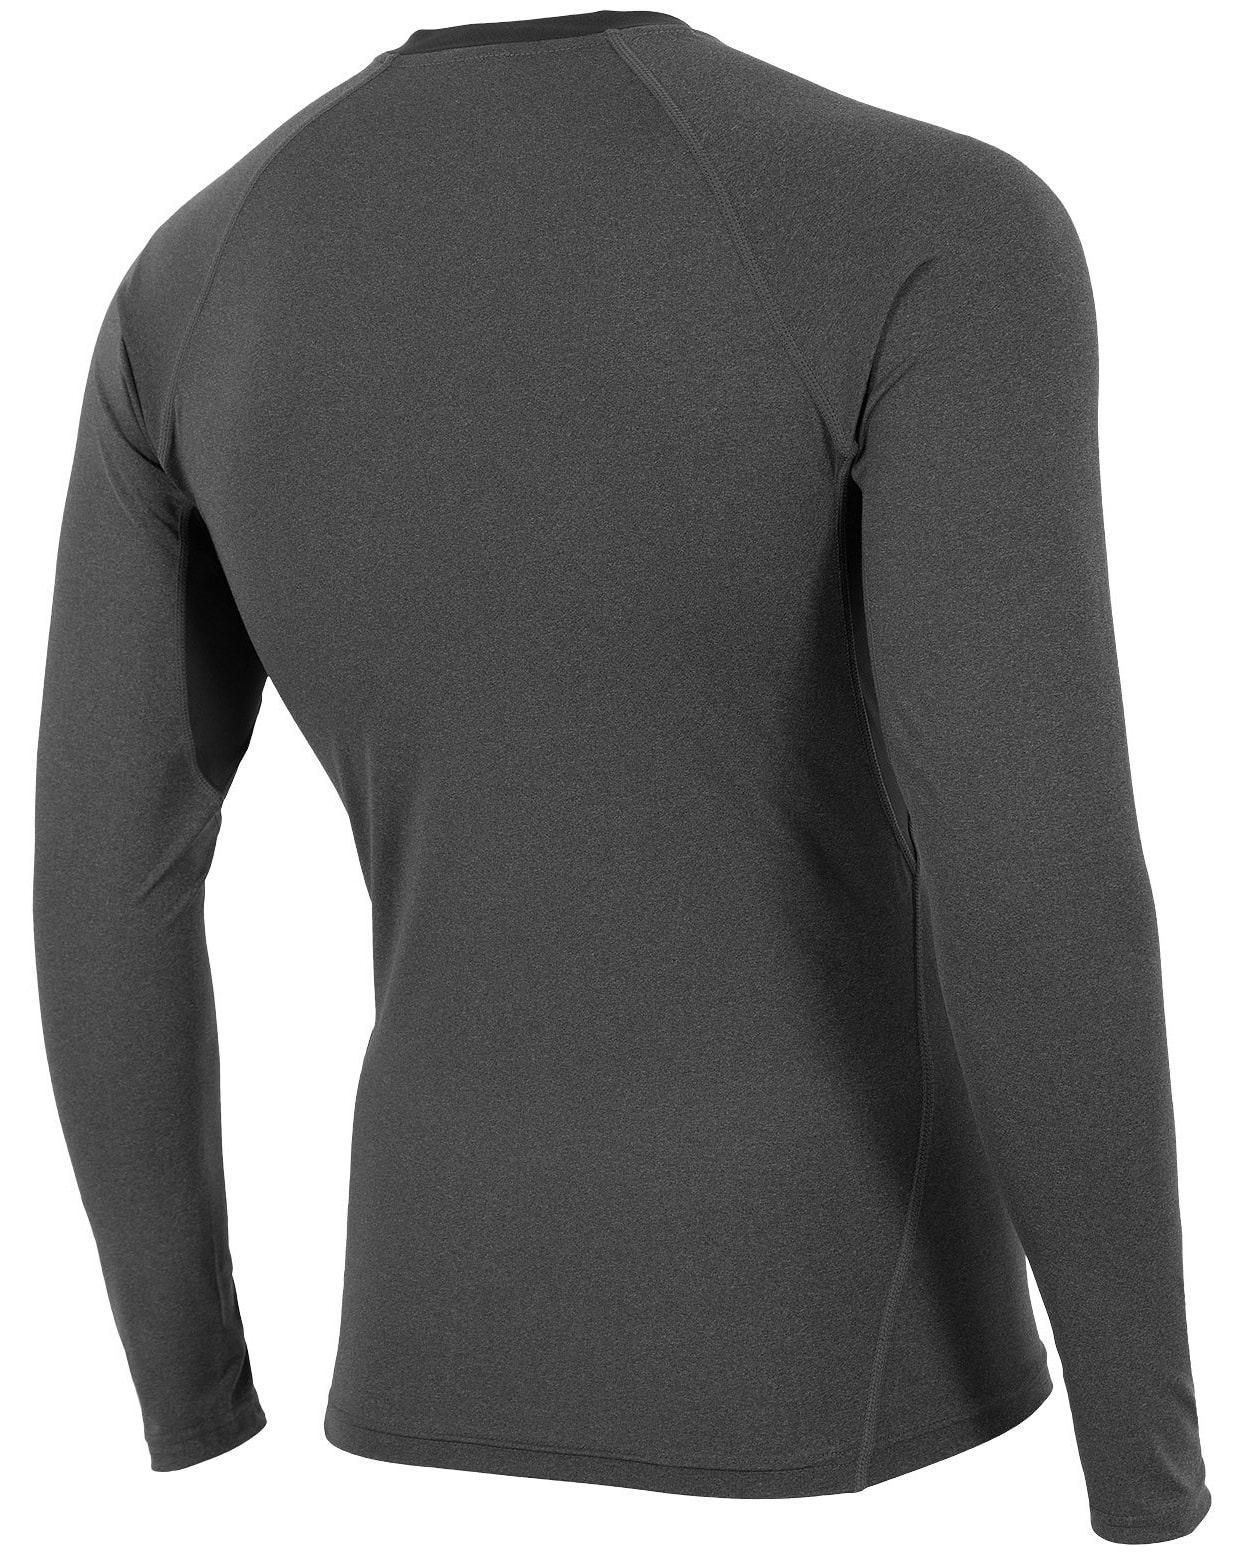 4F Man's Long Sleeve - Dark Grey Melange